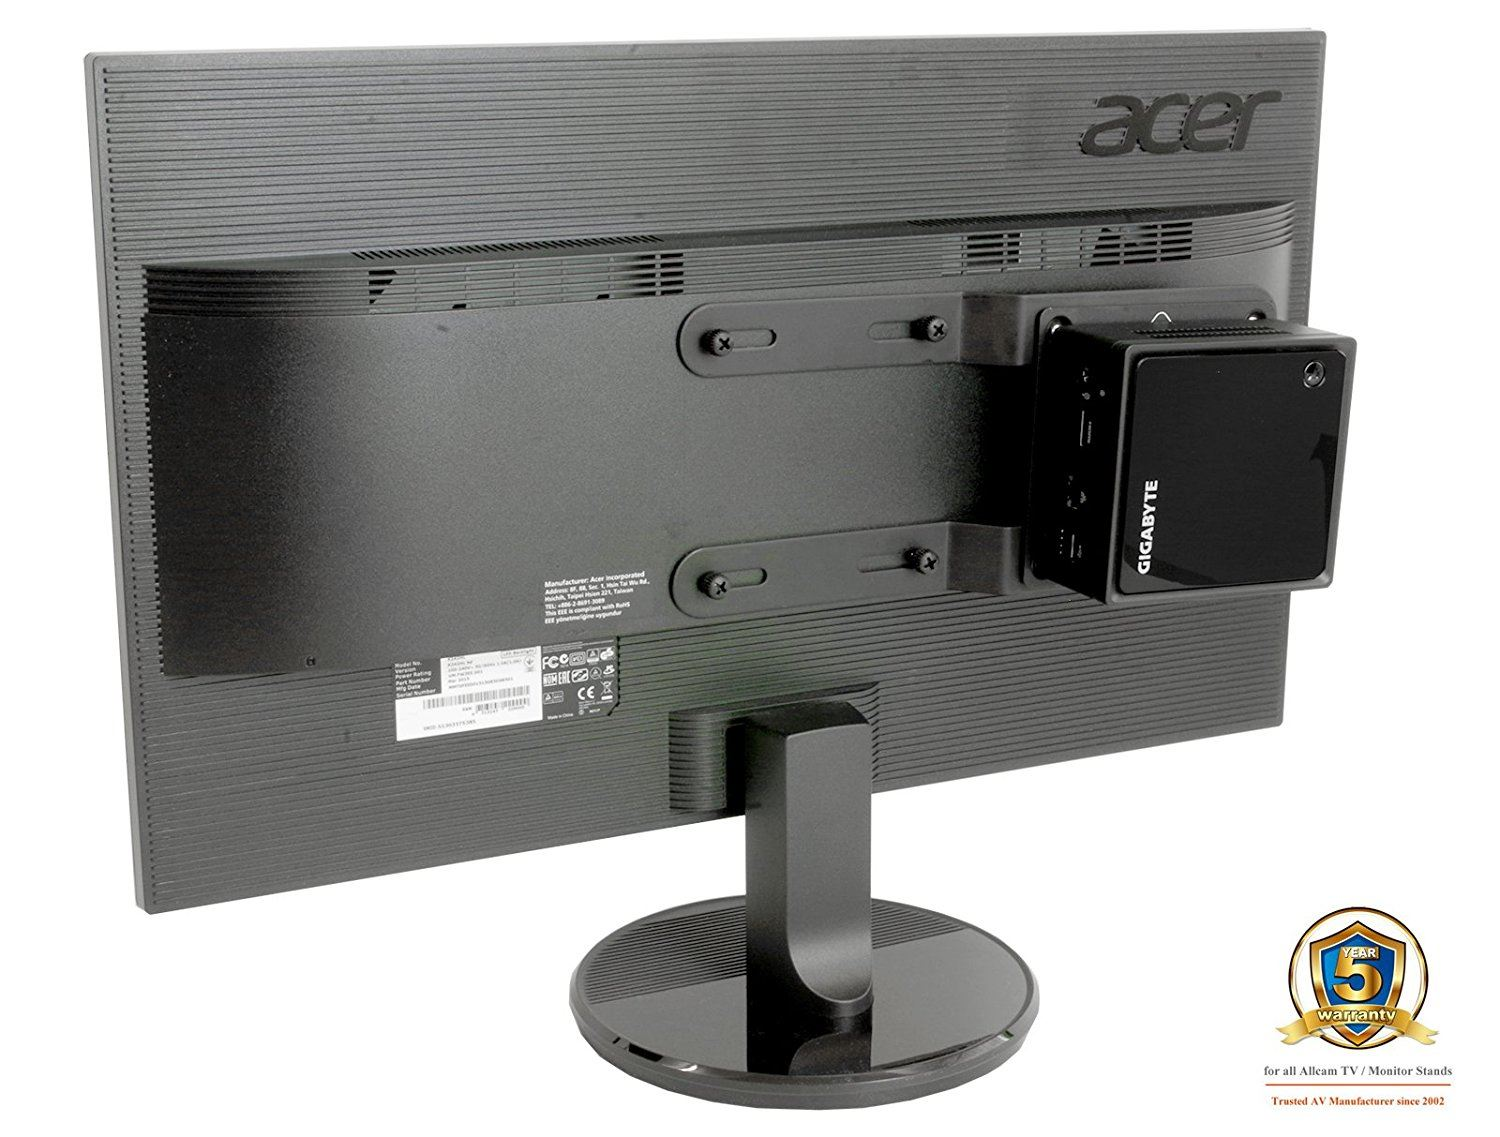 allcam professional nuc mini cpu holder stand vesa mount for mini pc computers ebay. Black Bedroom Furniture Sets. Home Design Ideas